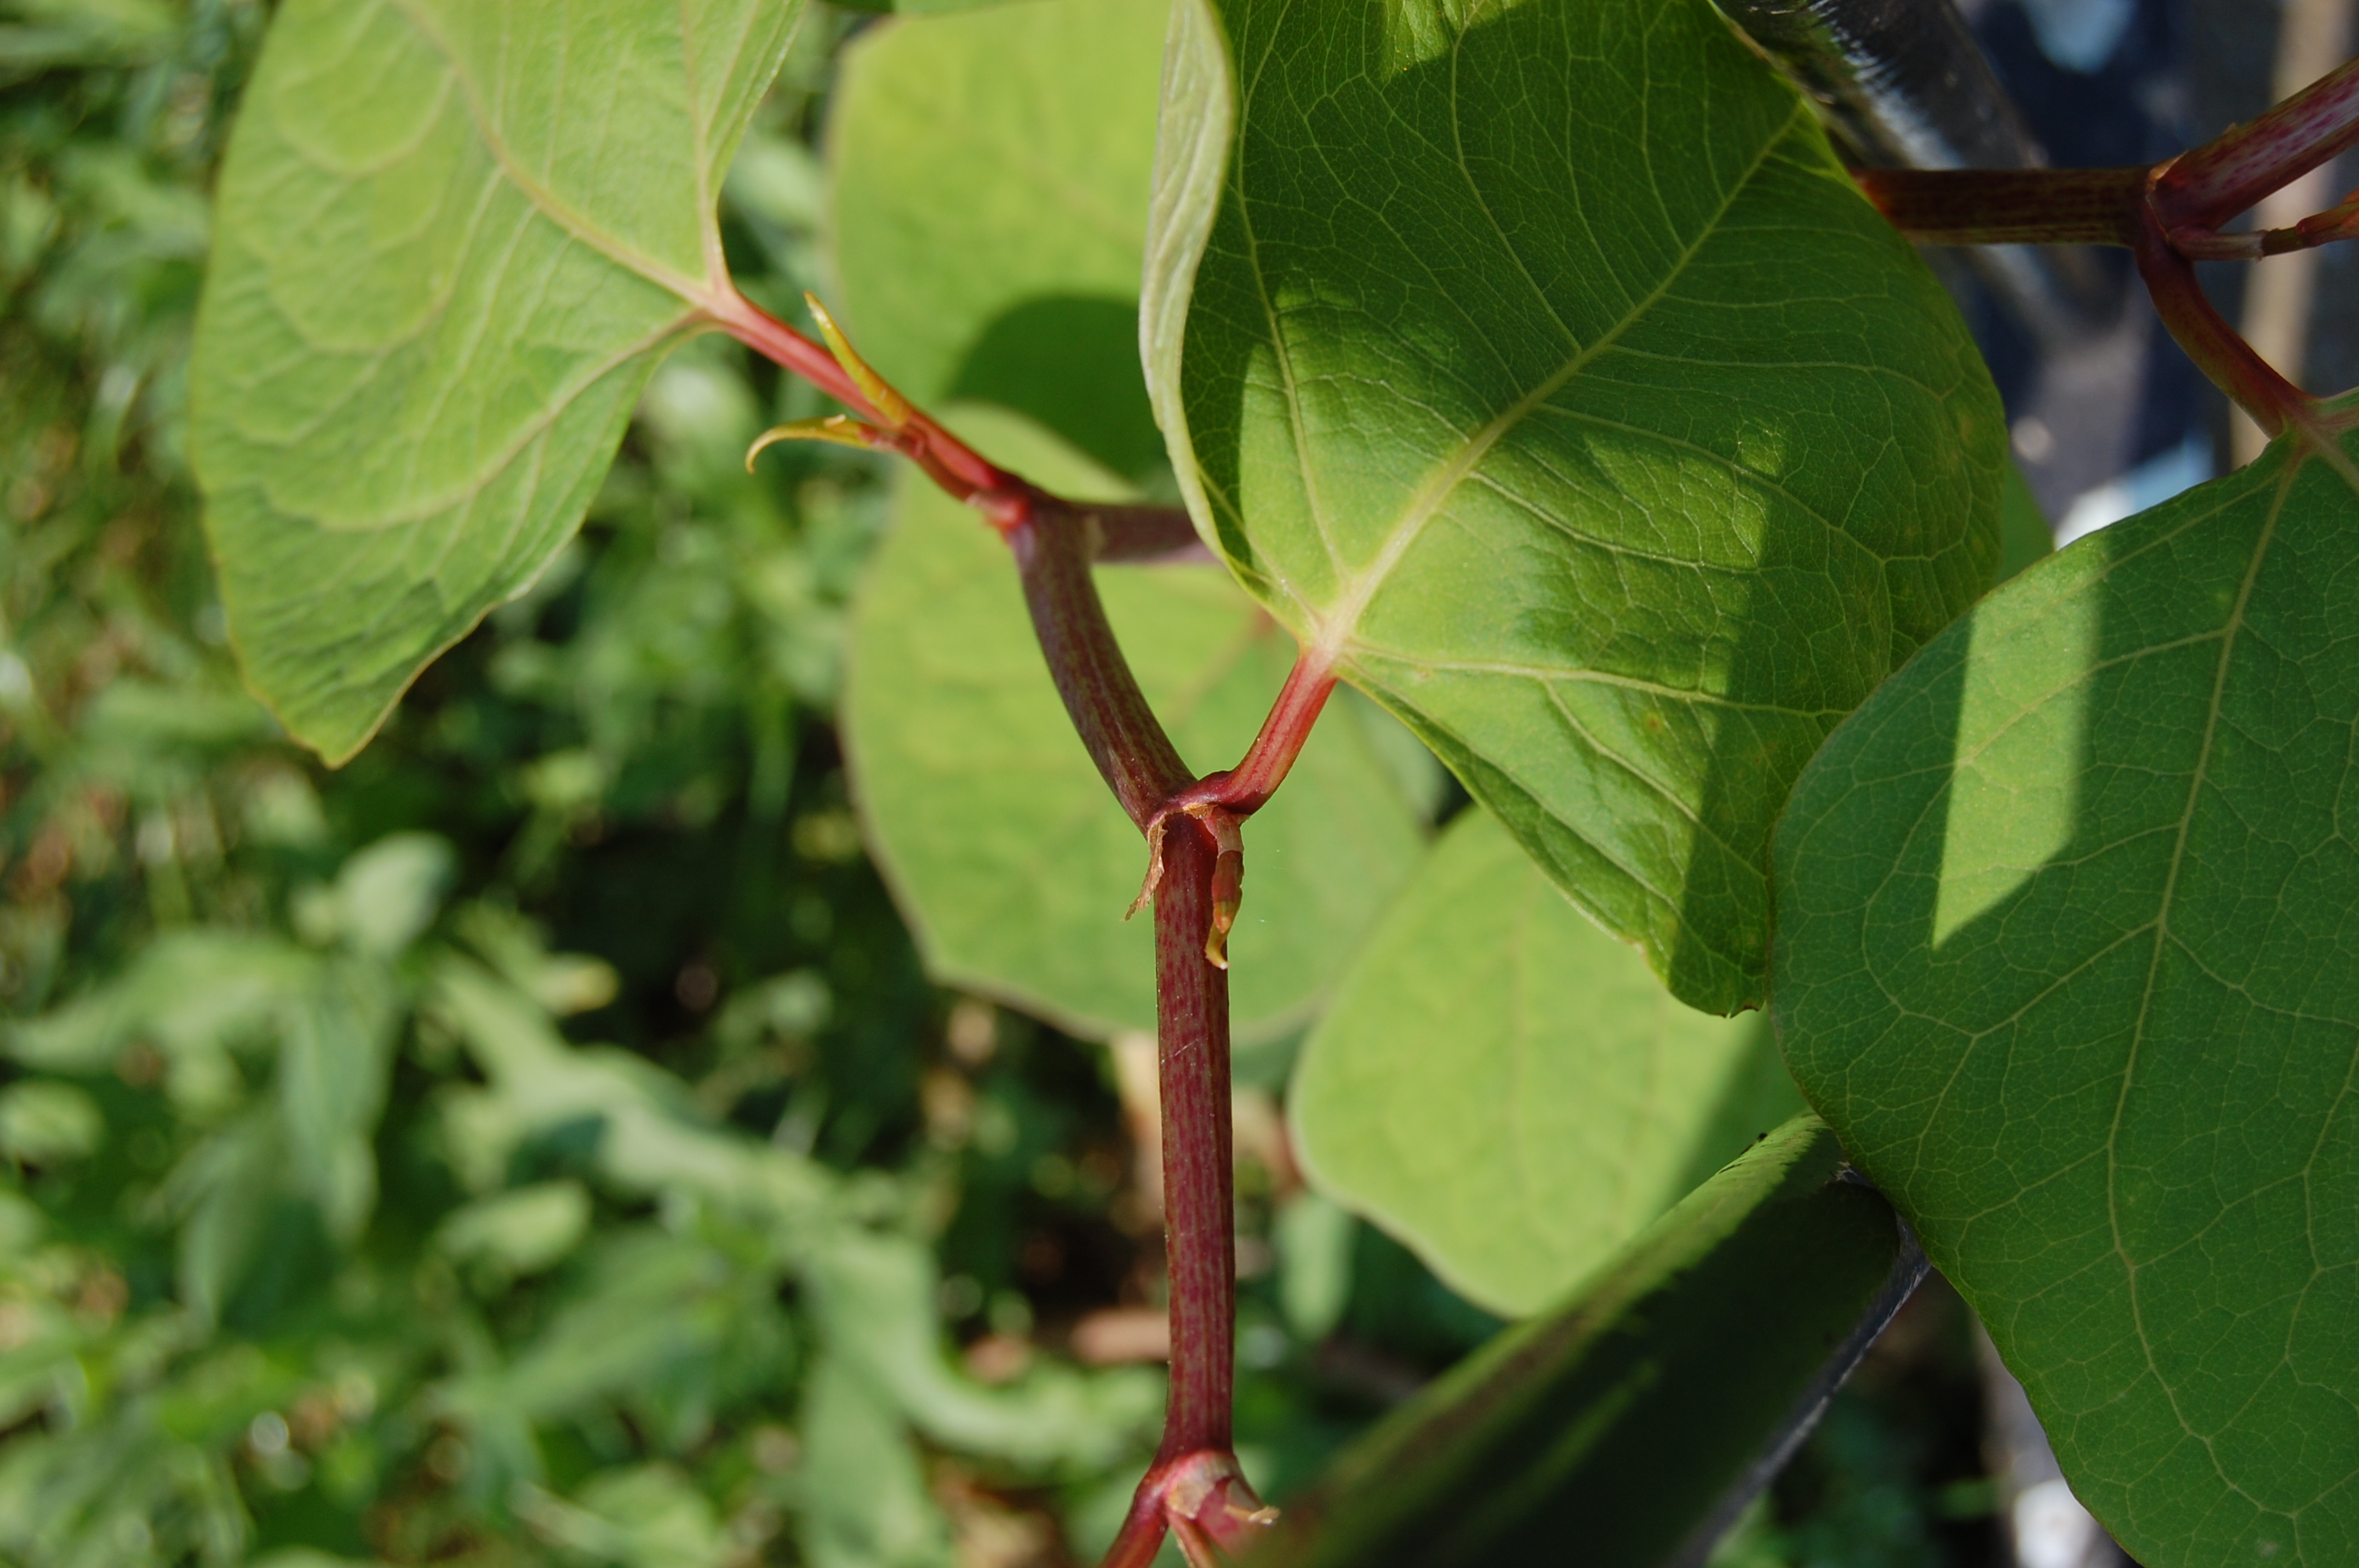 japanese-knotweed-detail